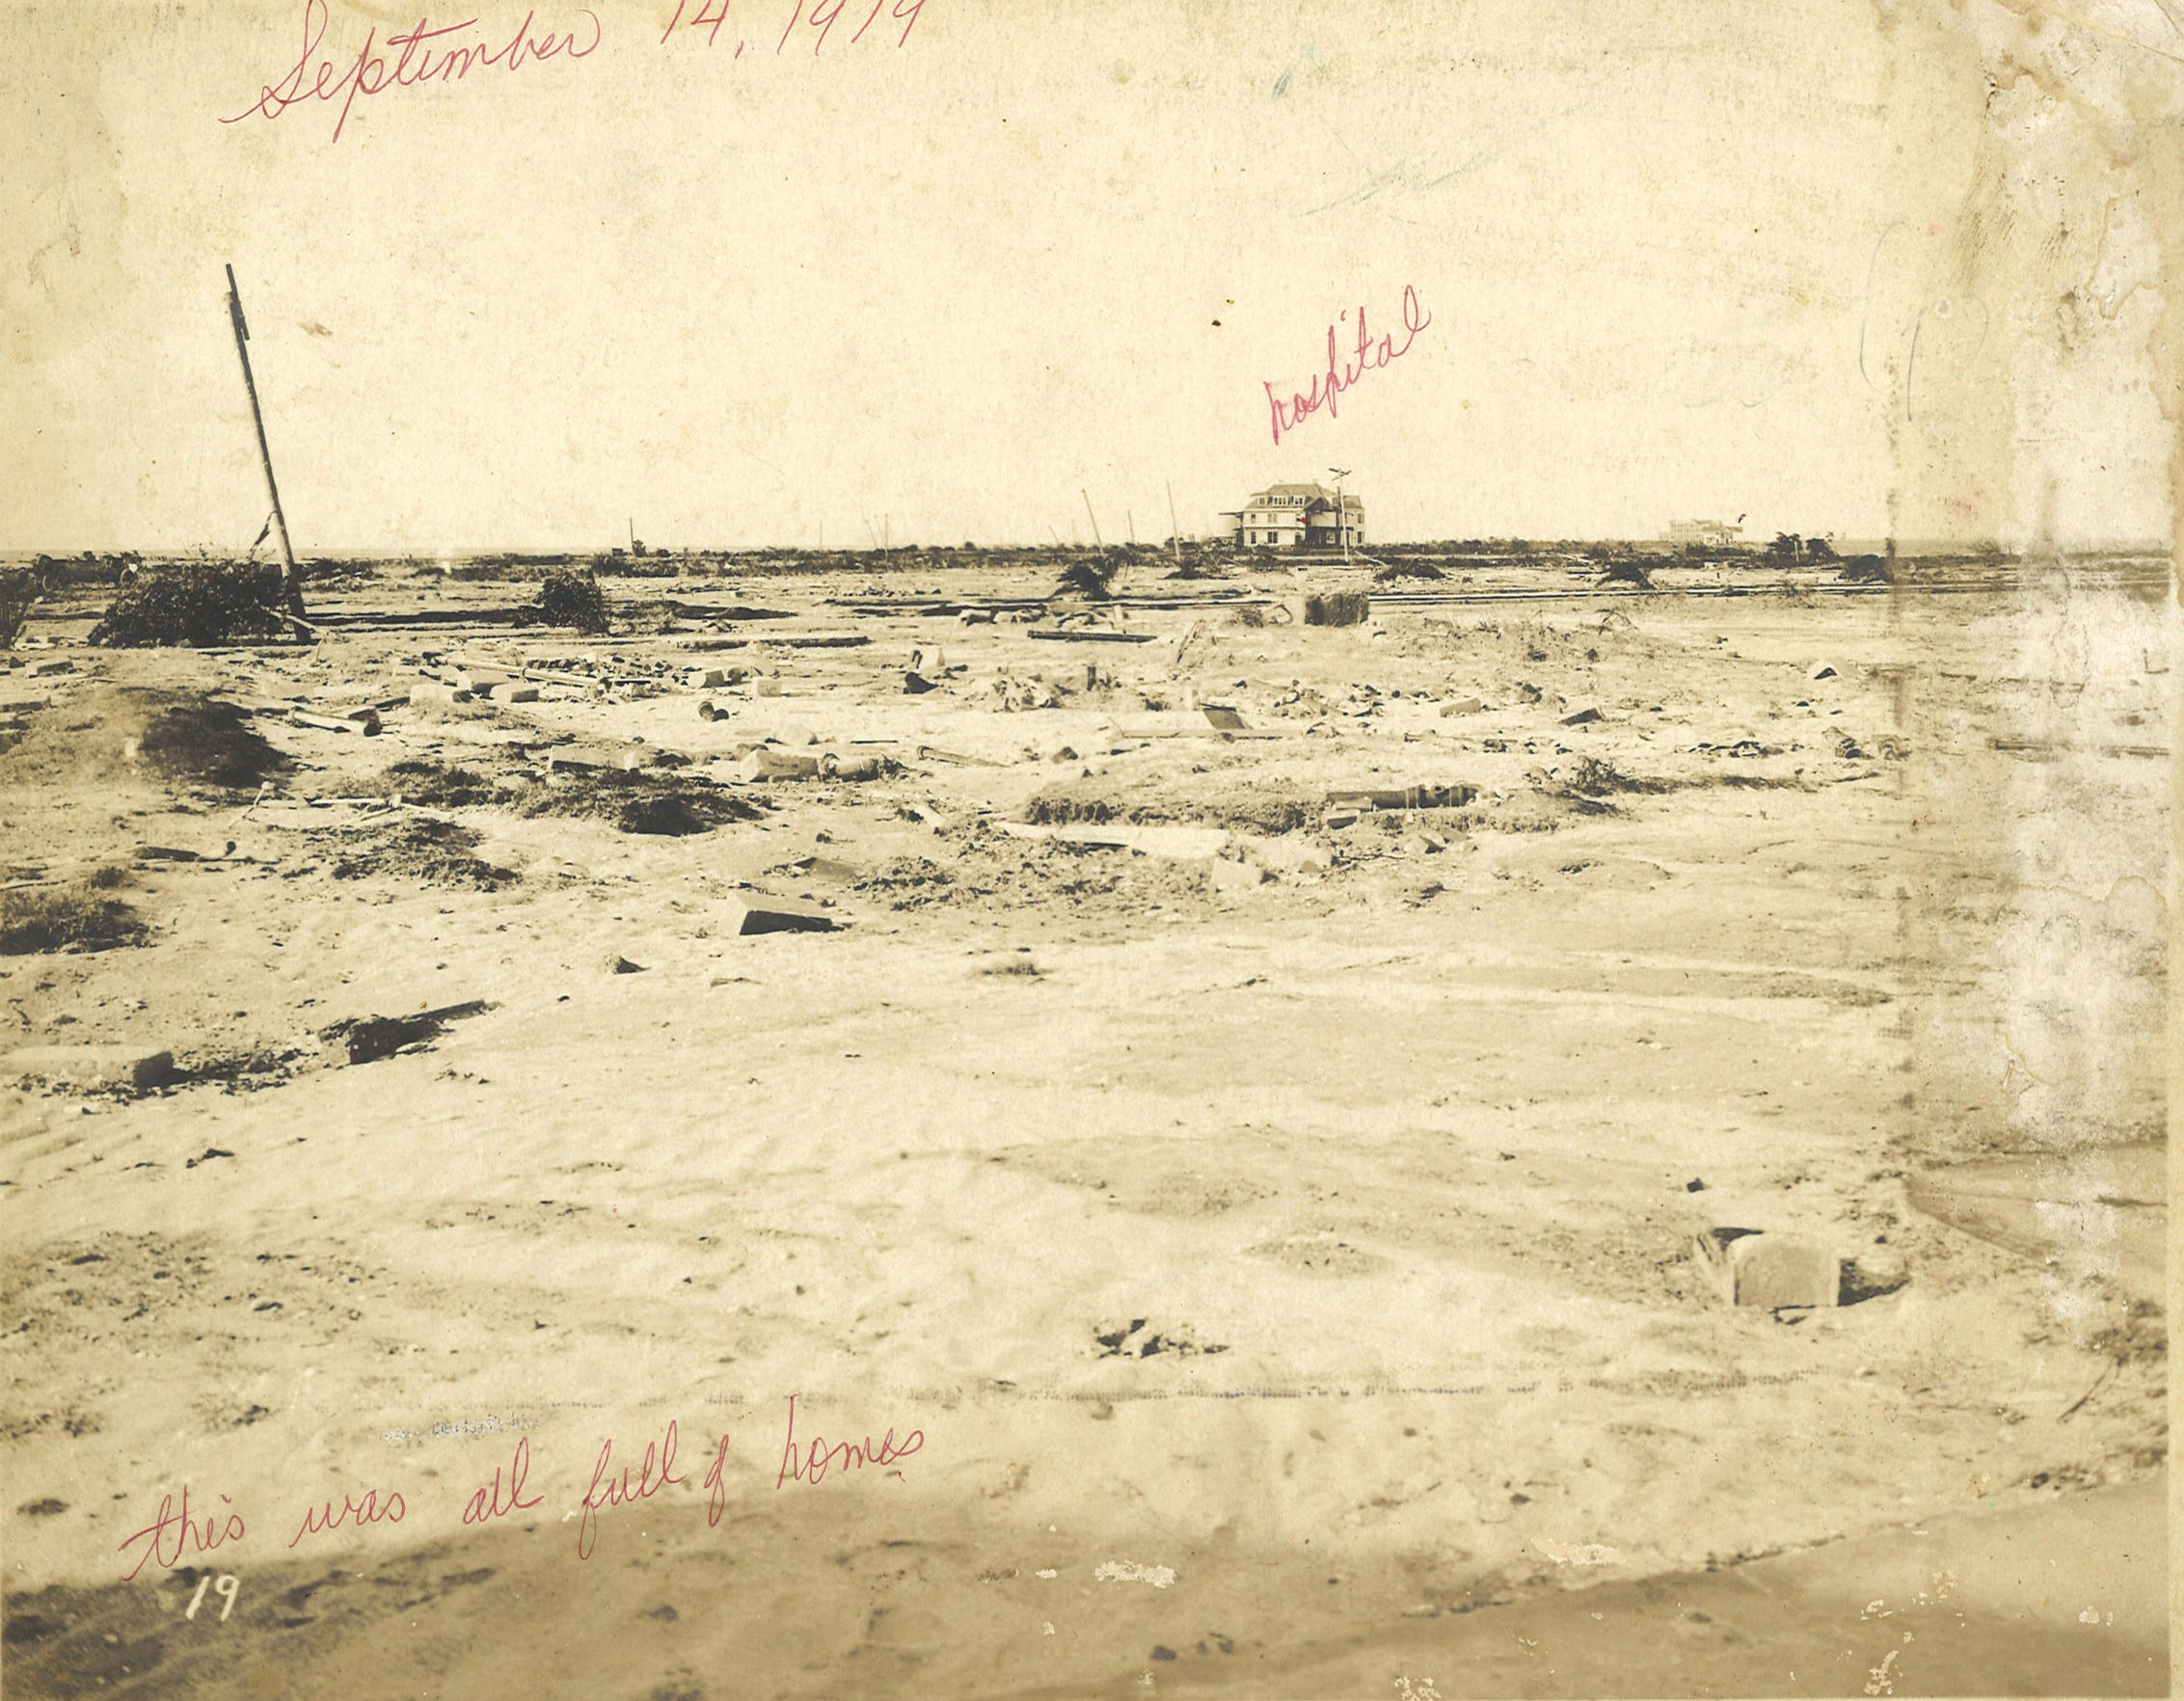 Spohn Sanitarium on North Beach (labeled hospital), one of only three buildings that survived the 1919 hurricane in Corpus Christi. In the far distance is Judge Henry McDonald's home and U.S. General Hospital No. 15. The sanitarium is where the Texas State Aquarium stands now. From the collection of Inez Hendrix Stairs.